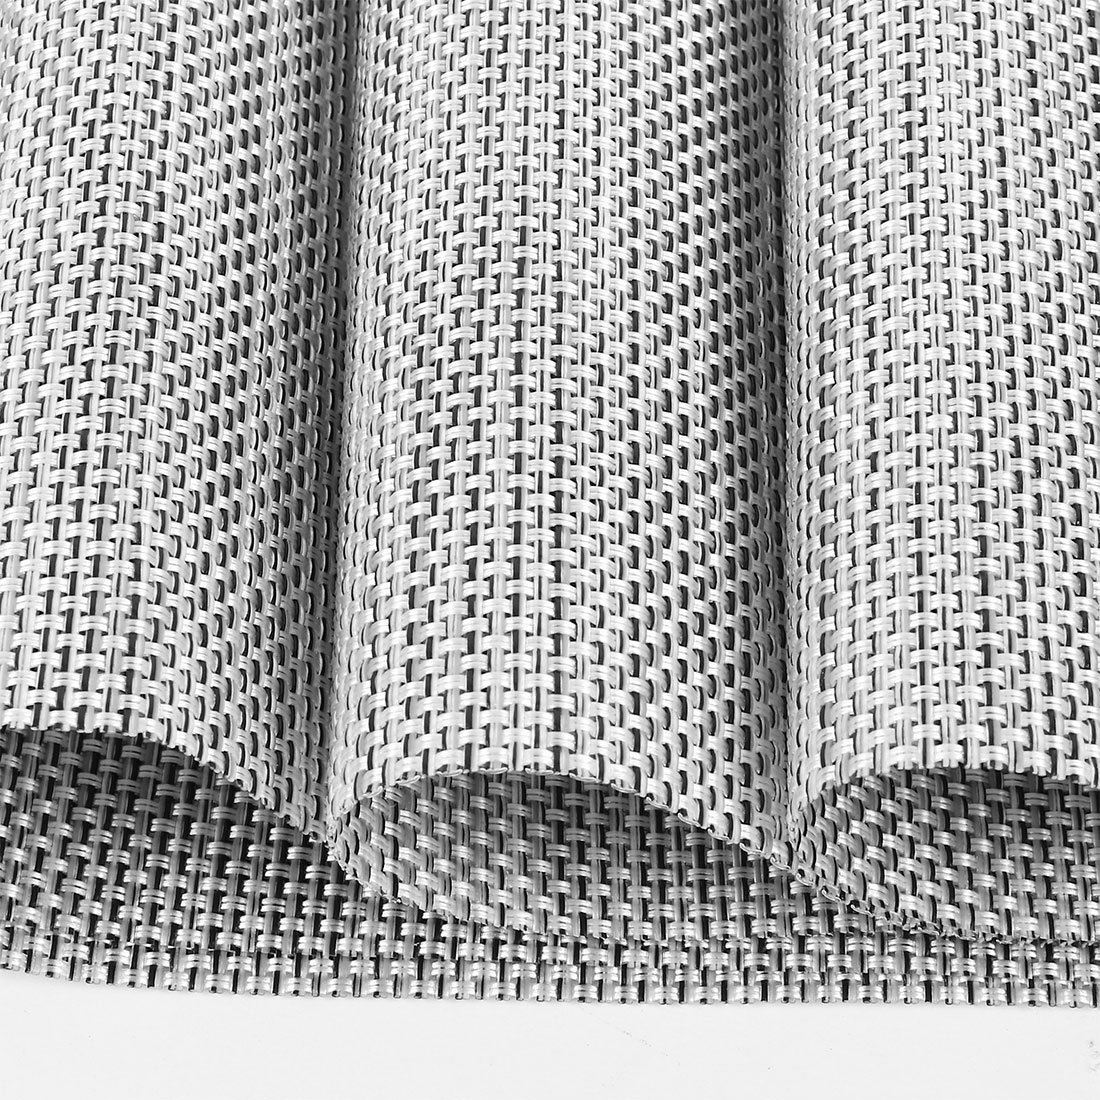 Placemats,HQSILK Table Mats,Placemat Set of 6 Non-Slip Washable Place Mats,Heat Resistant Kitchen Tablemats for Dining Table (Gray) by HQSILK (Image #3)